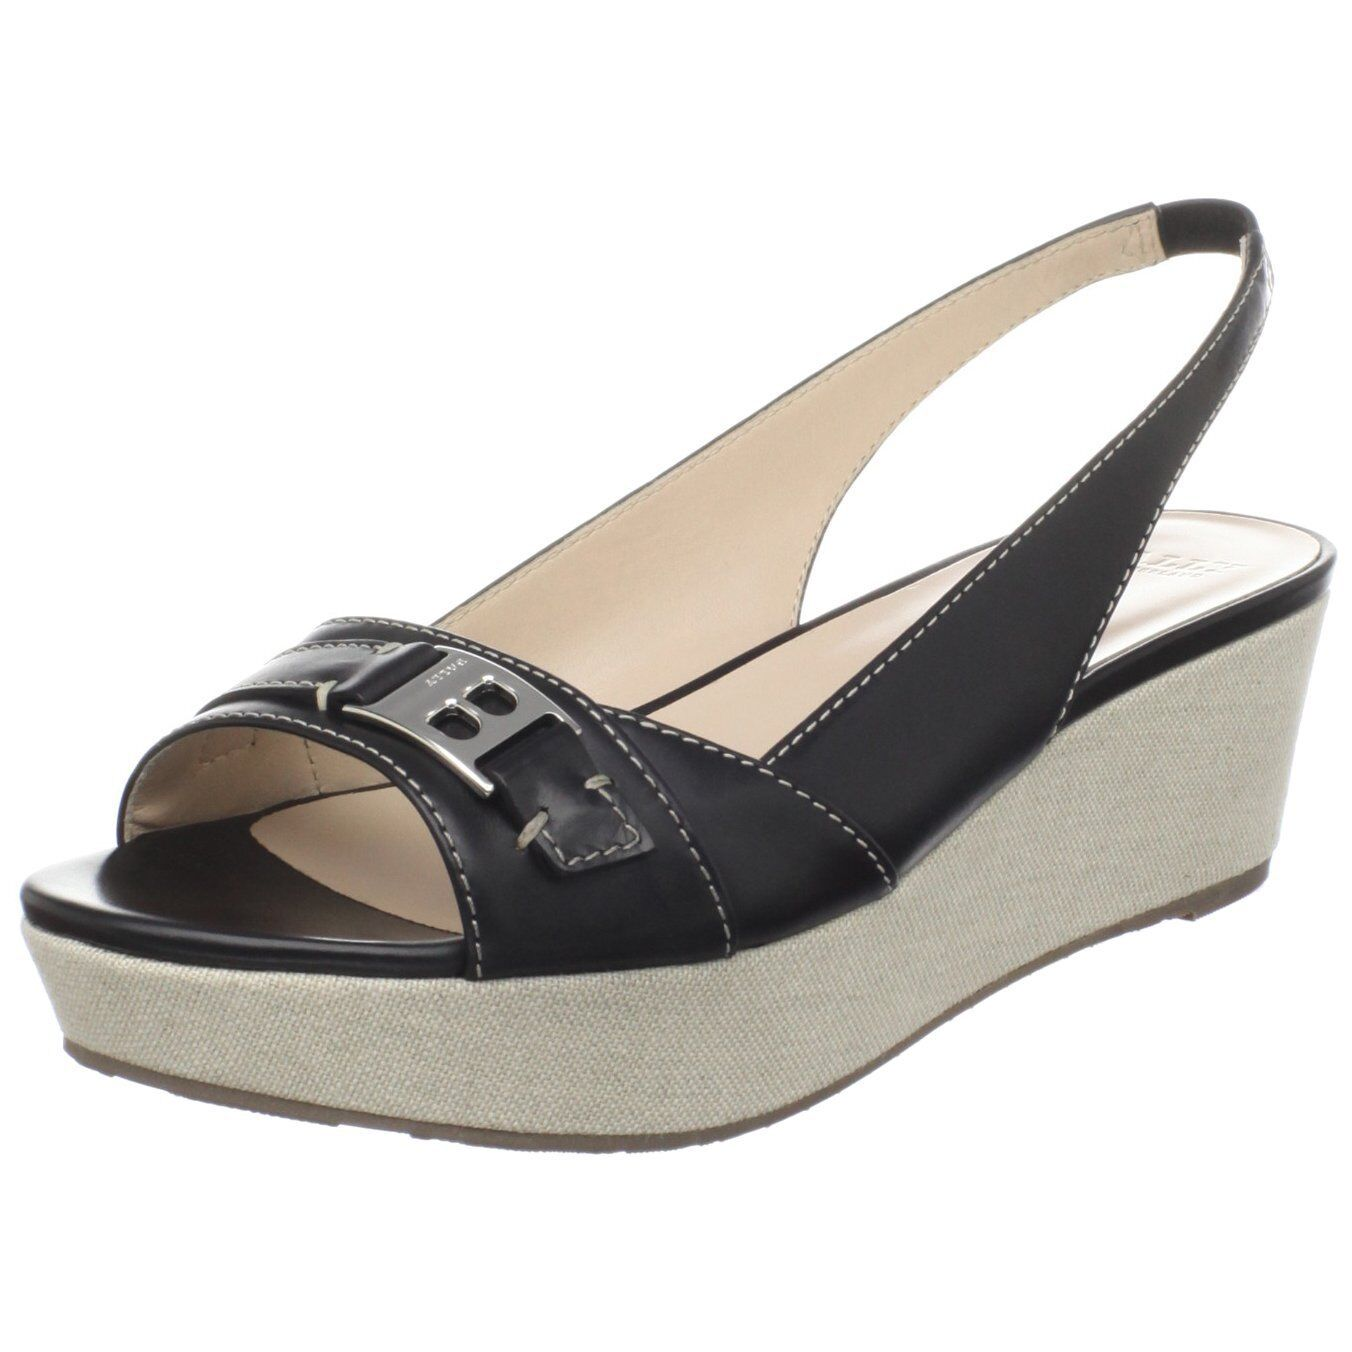 NEW BOX BALLY US 5.5 EUR 36 Leather Open-Toe Wedge Slingblack Sandals shoes